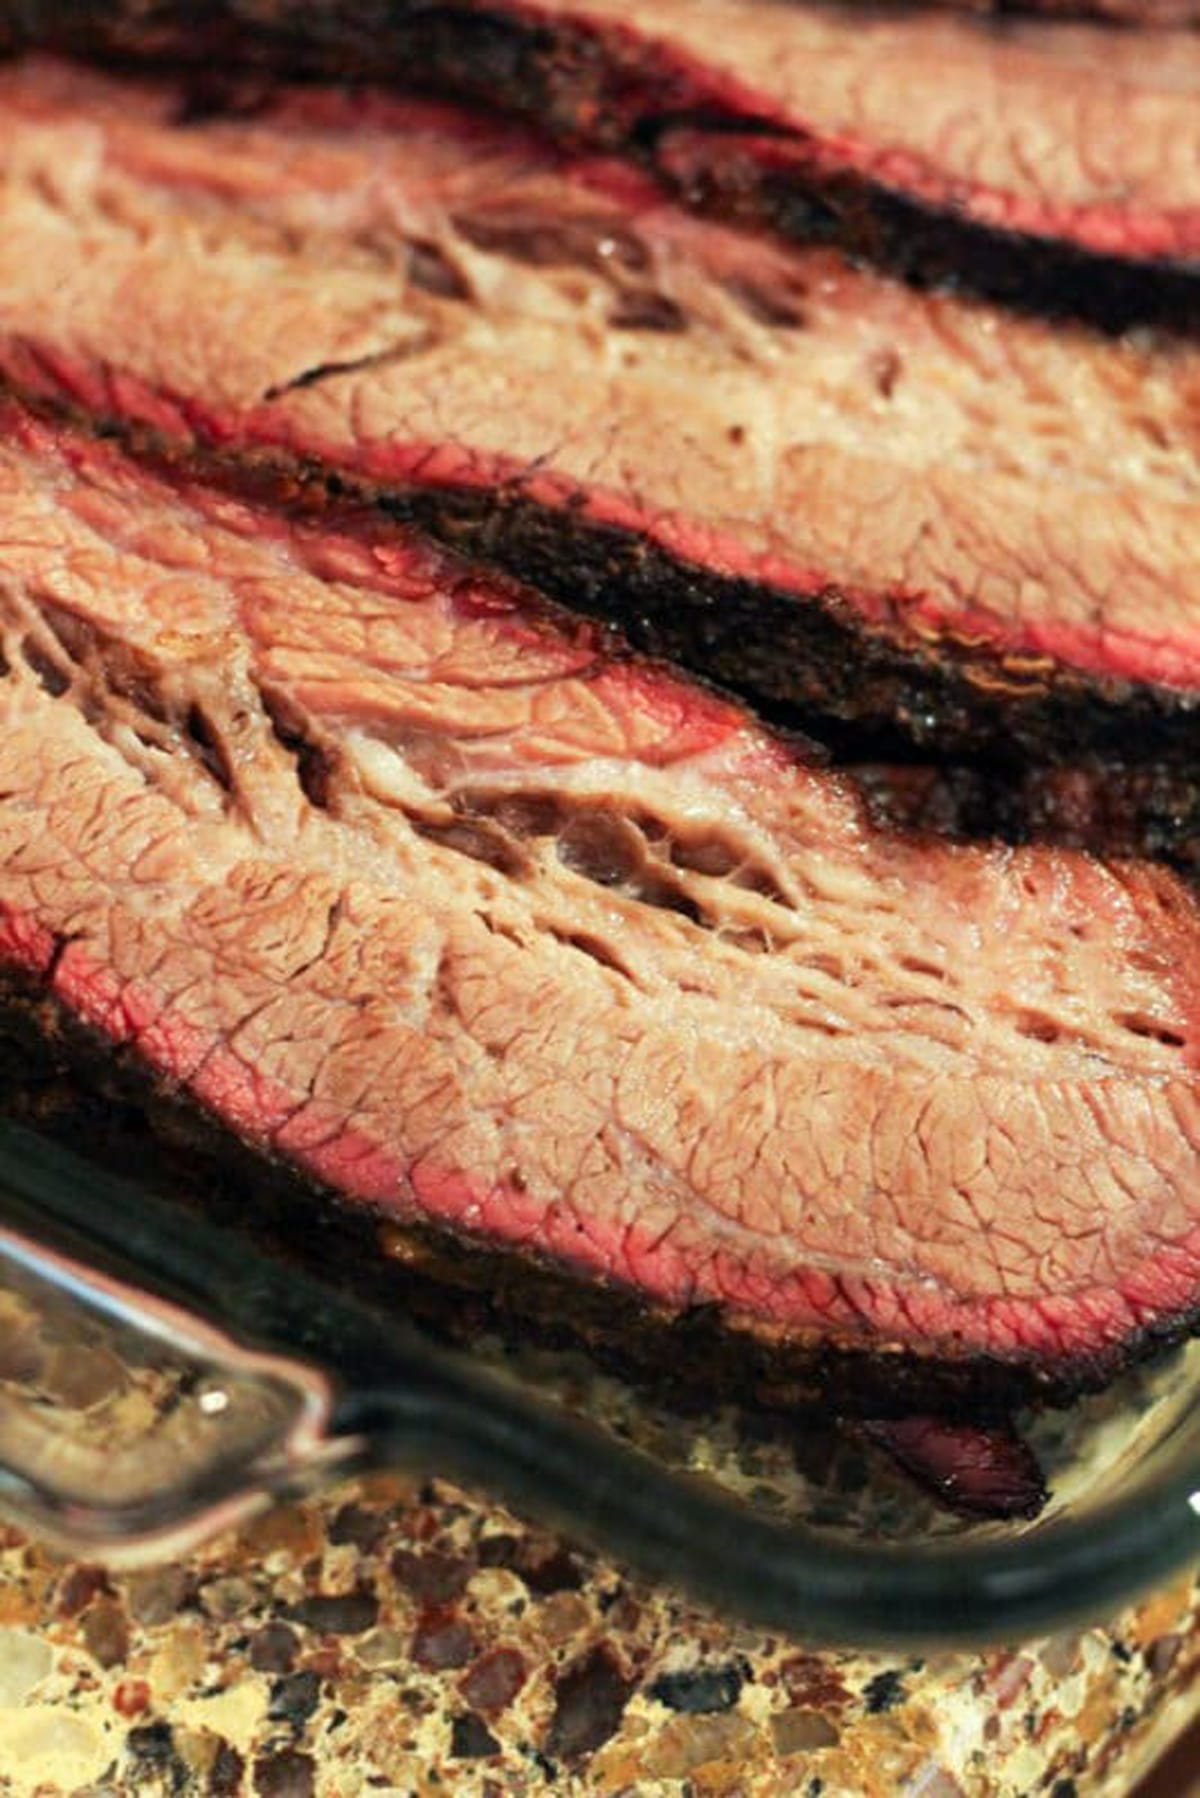 Close up of slices of brisket with the smoker ring.